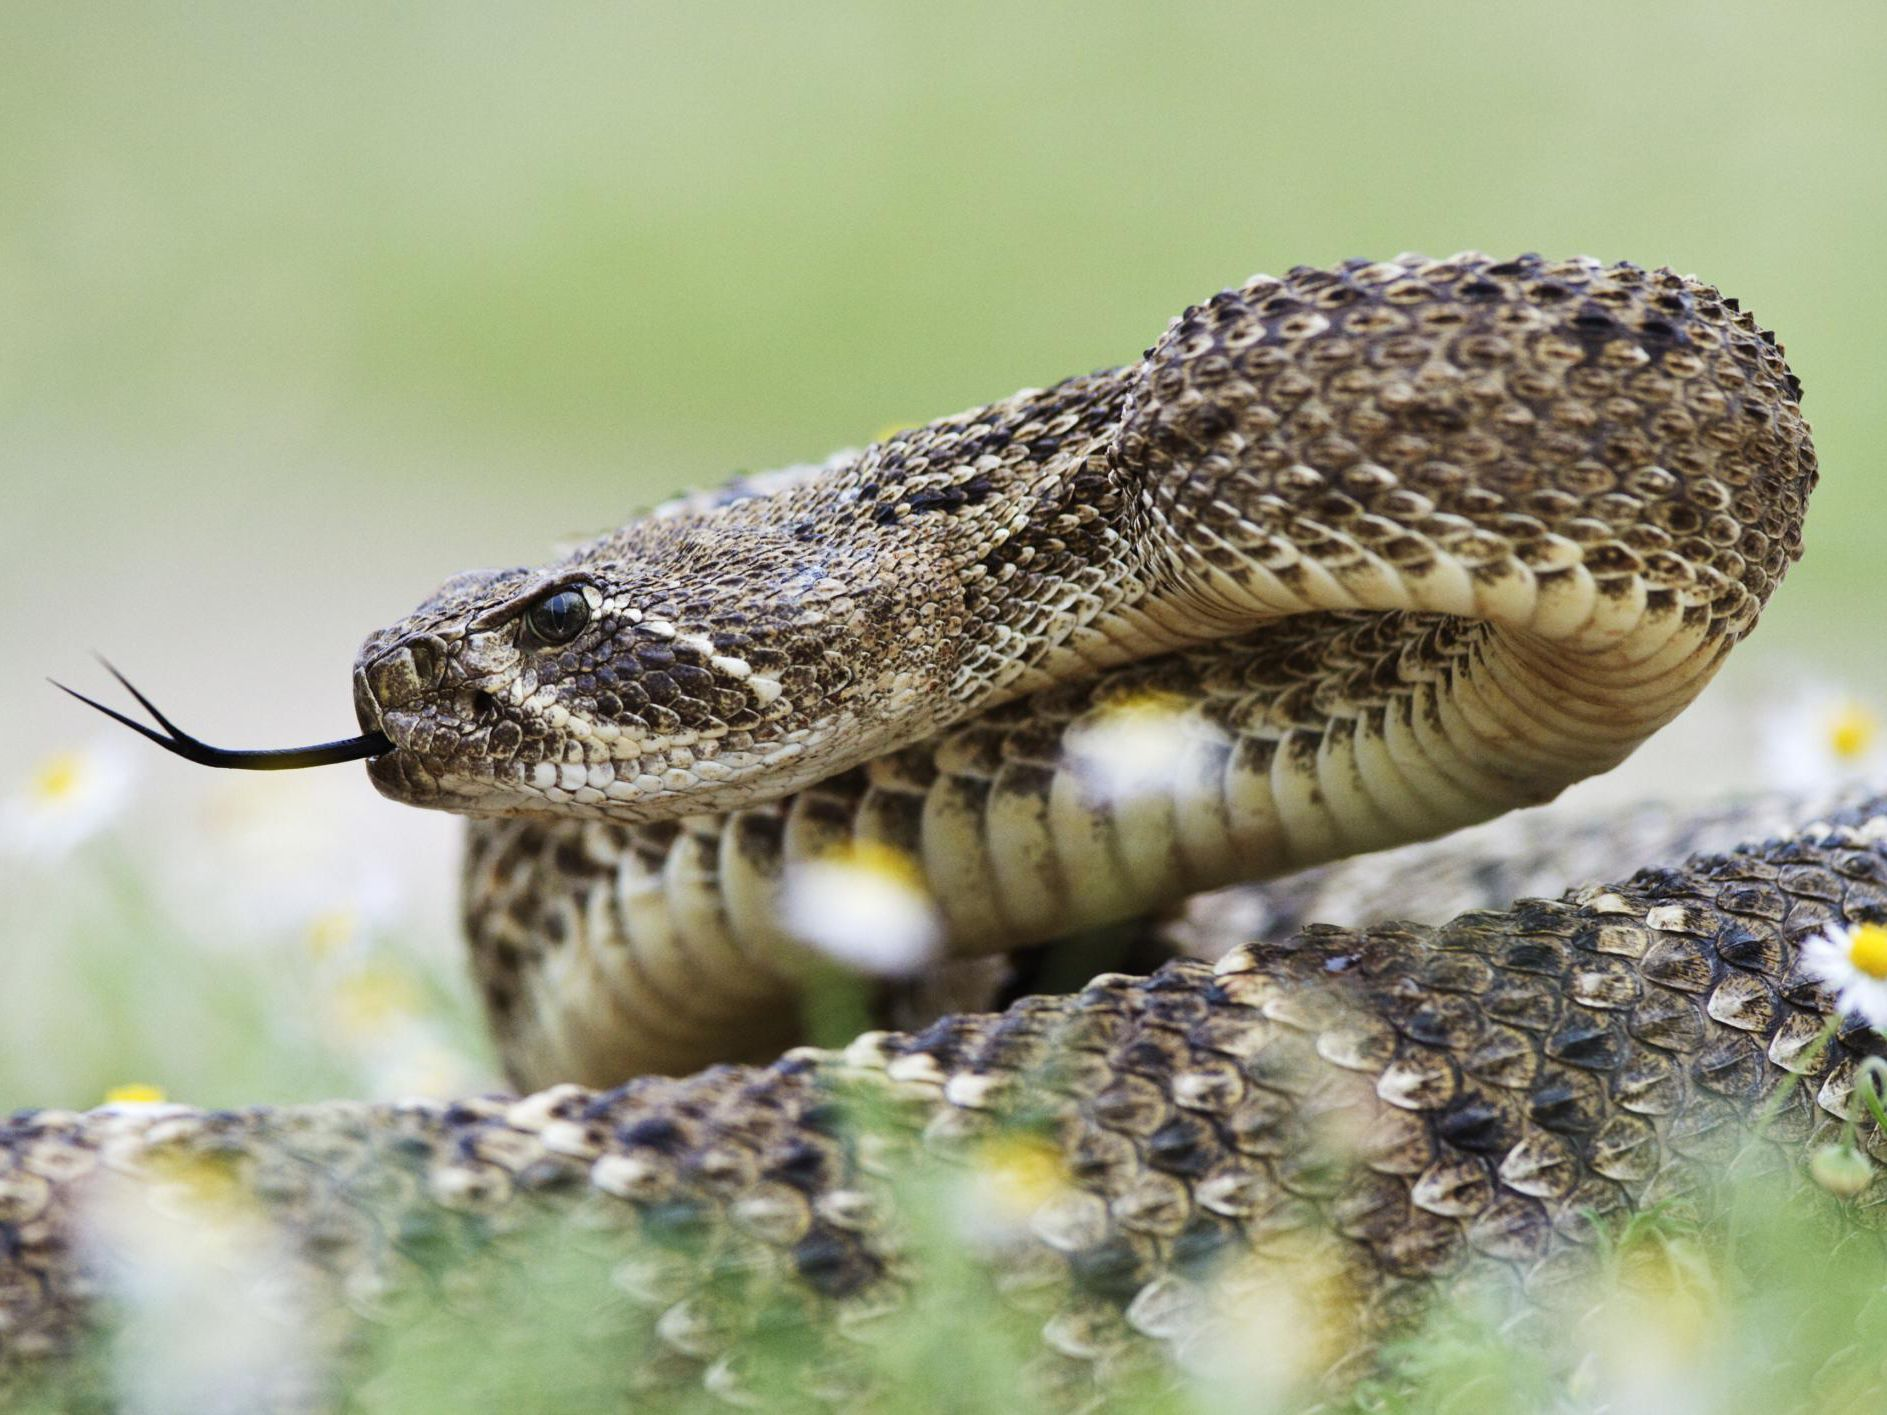 What To Do If A Rattlesnake Bites You